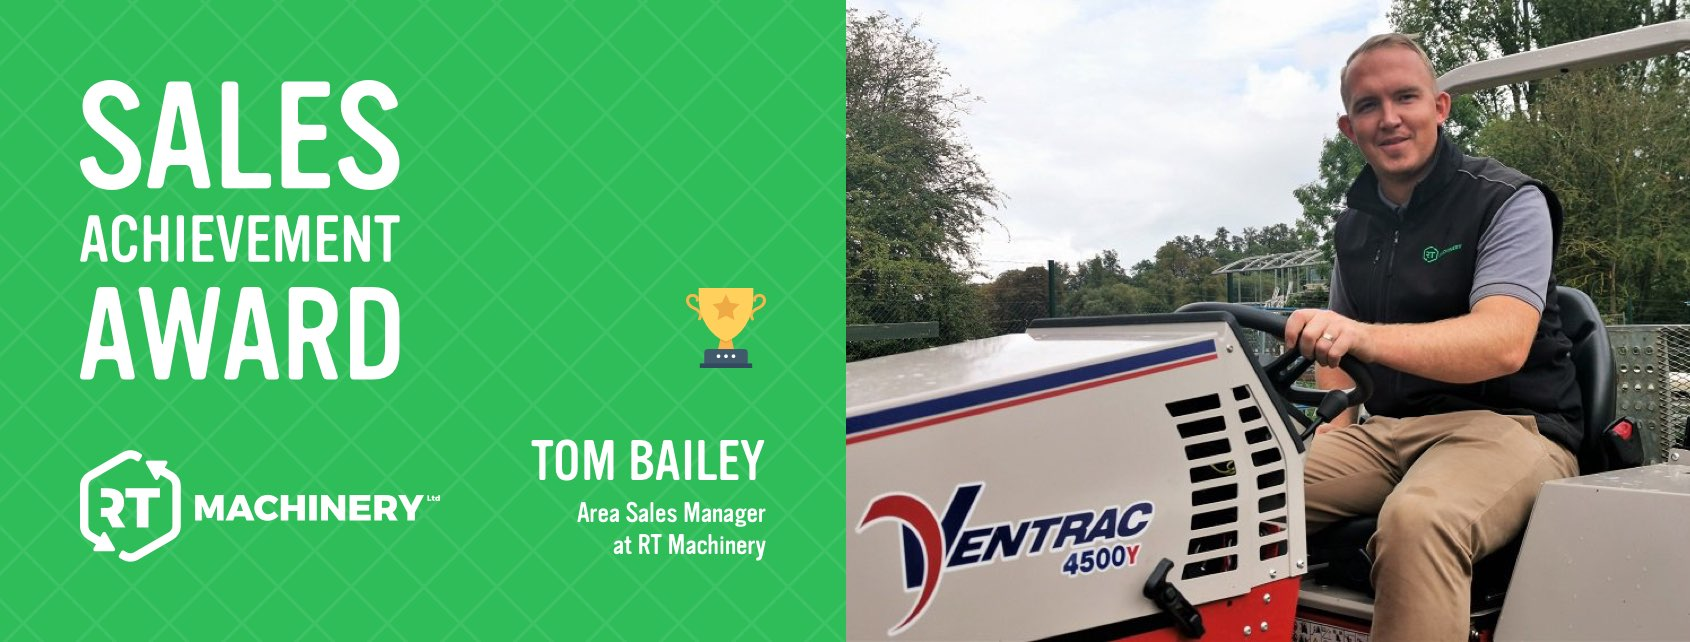 ventrac-sales-award-for-tom-bailey-banner